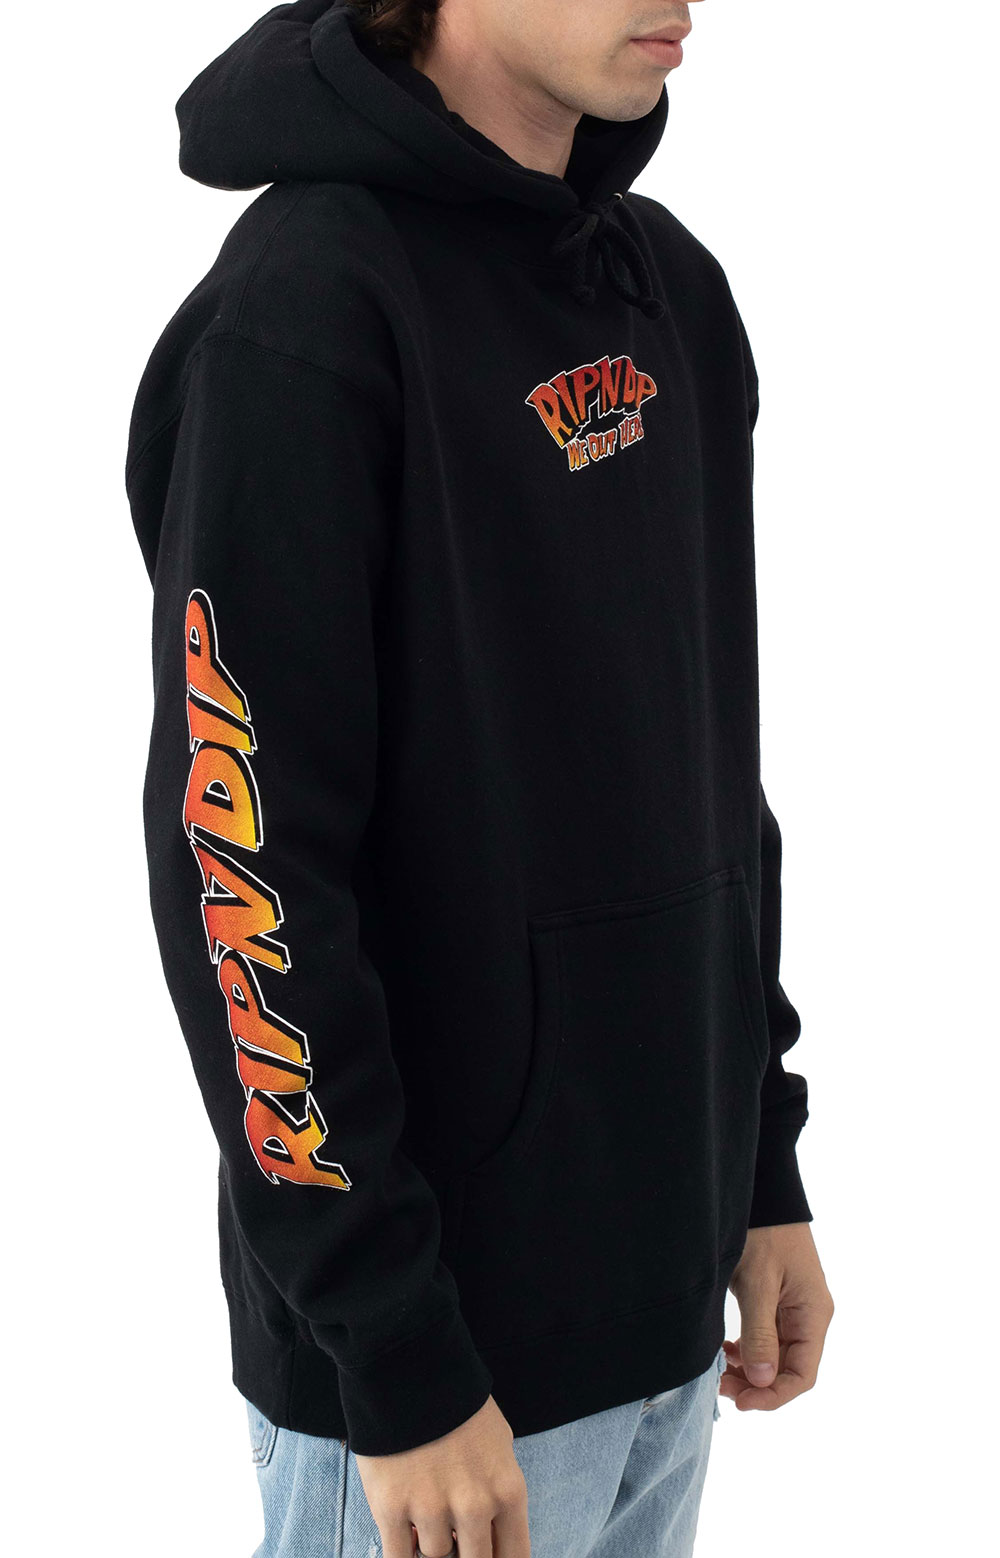 Out Of This World Pullover Hoodie - Black  3